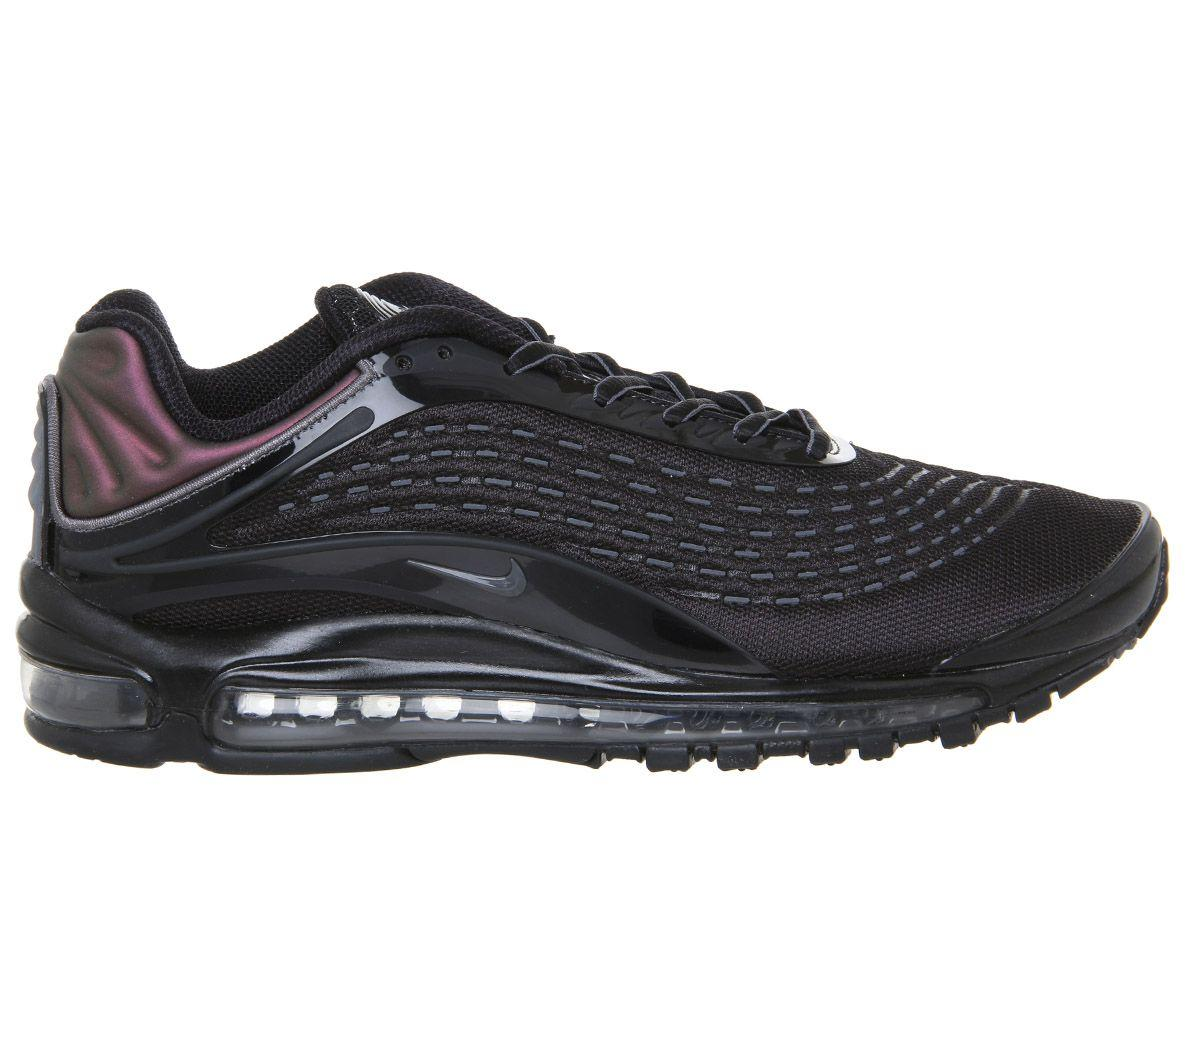 Nike Rubber Air Max Deluxe in Black - Lyst